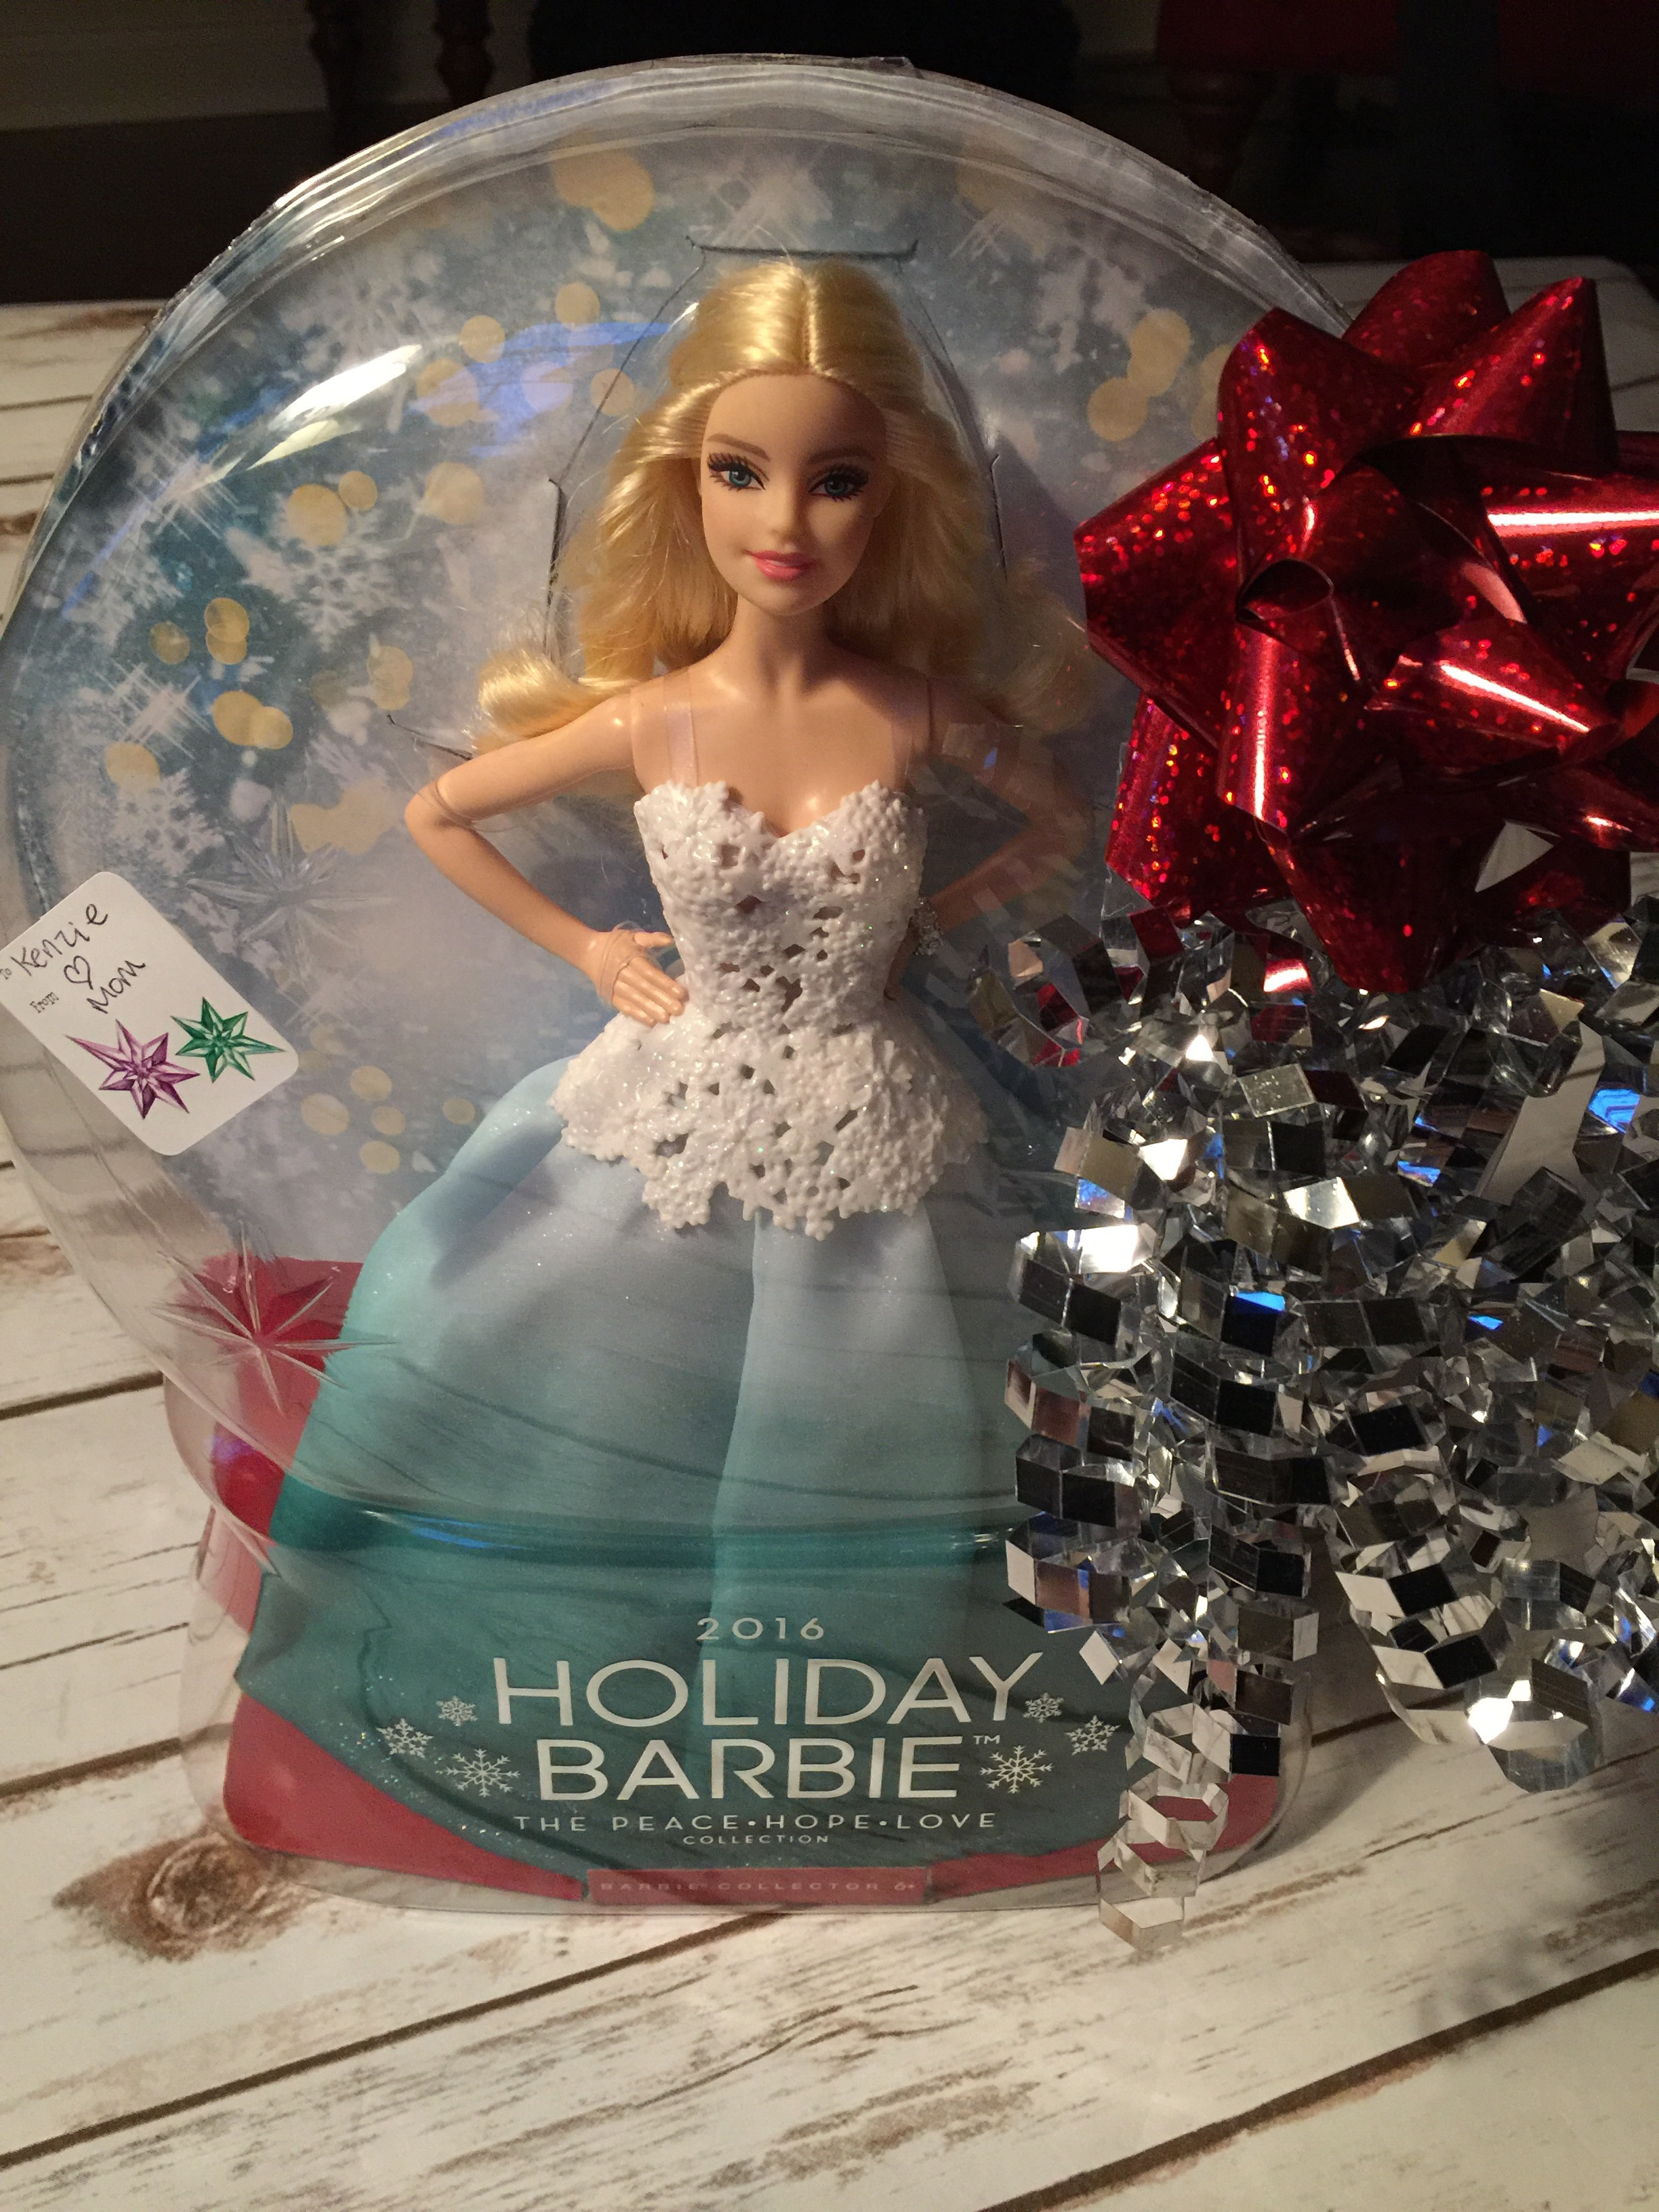 2016 holiday barbie u2122 doll  making  barbie gifts a special